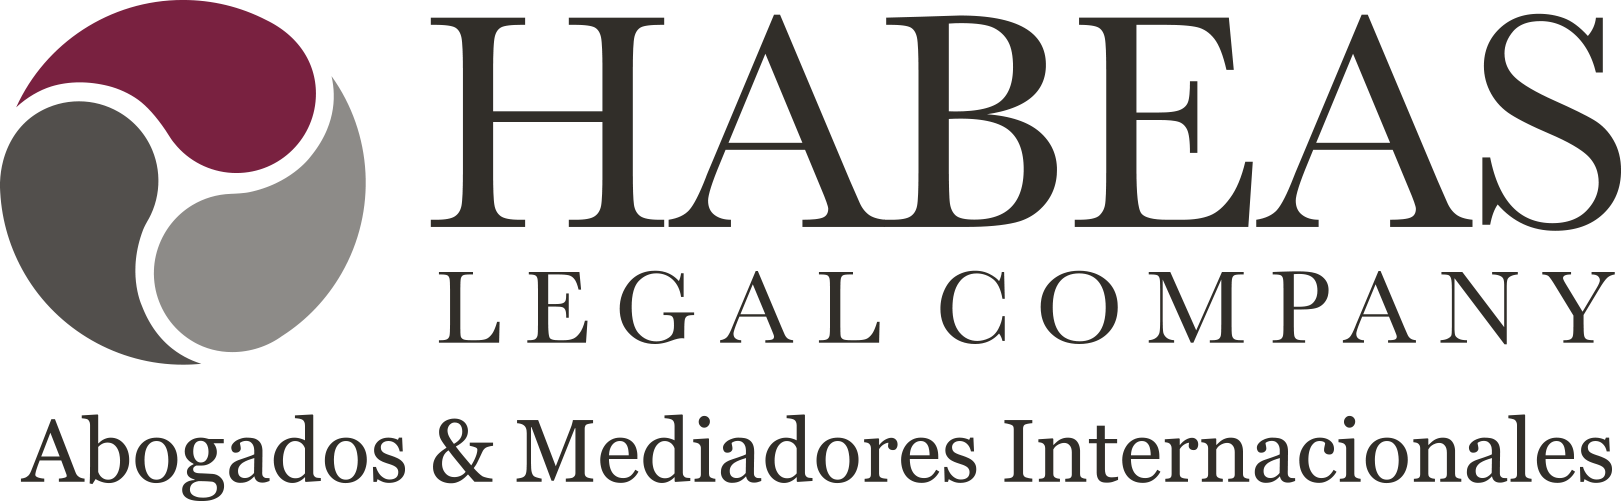 Habeas Legal Company